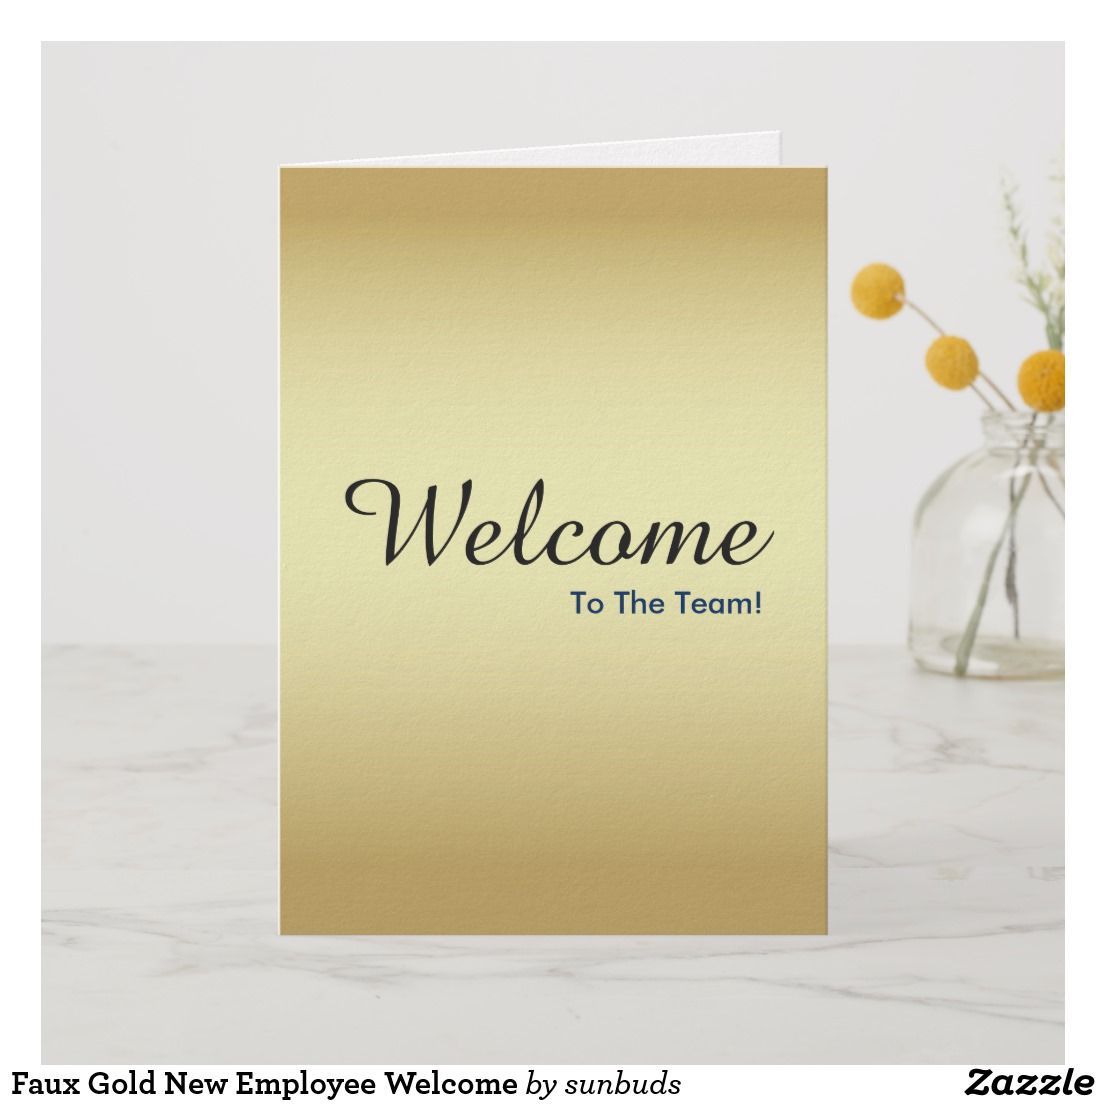 Faux Gold New Employee Welcome Card Zazzle Com Welcome Card Faux Printing Double Sided